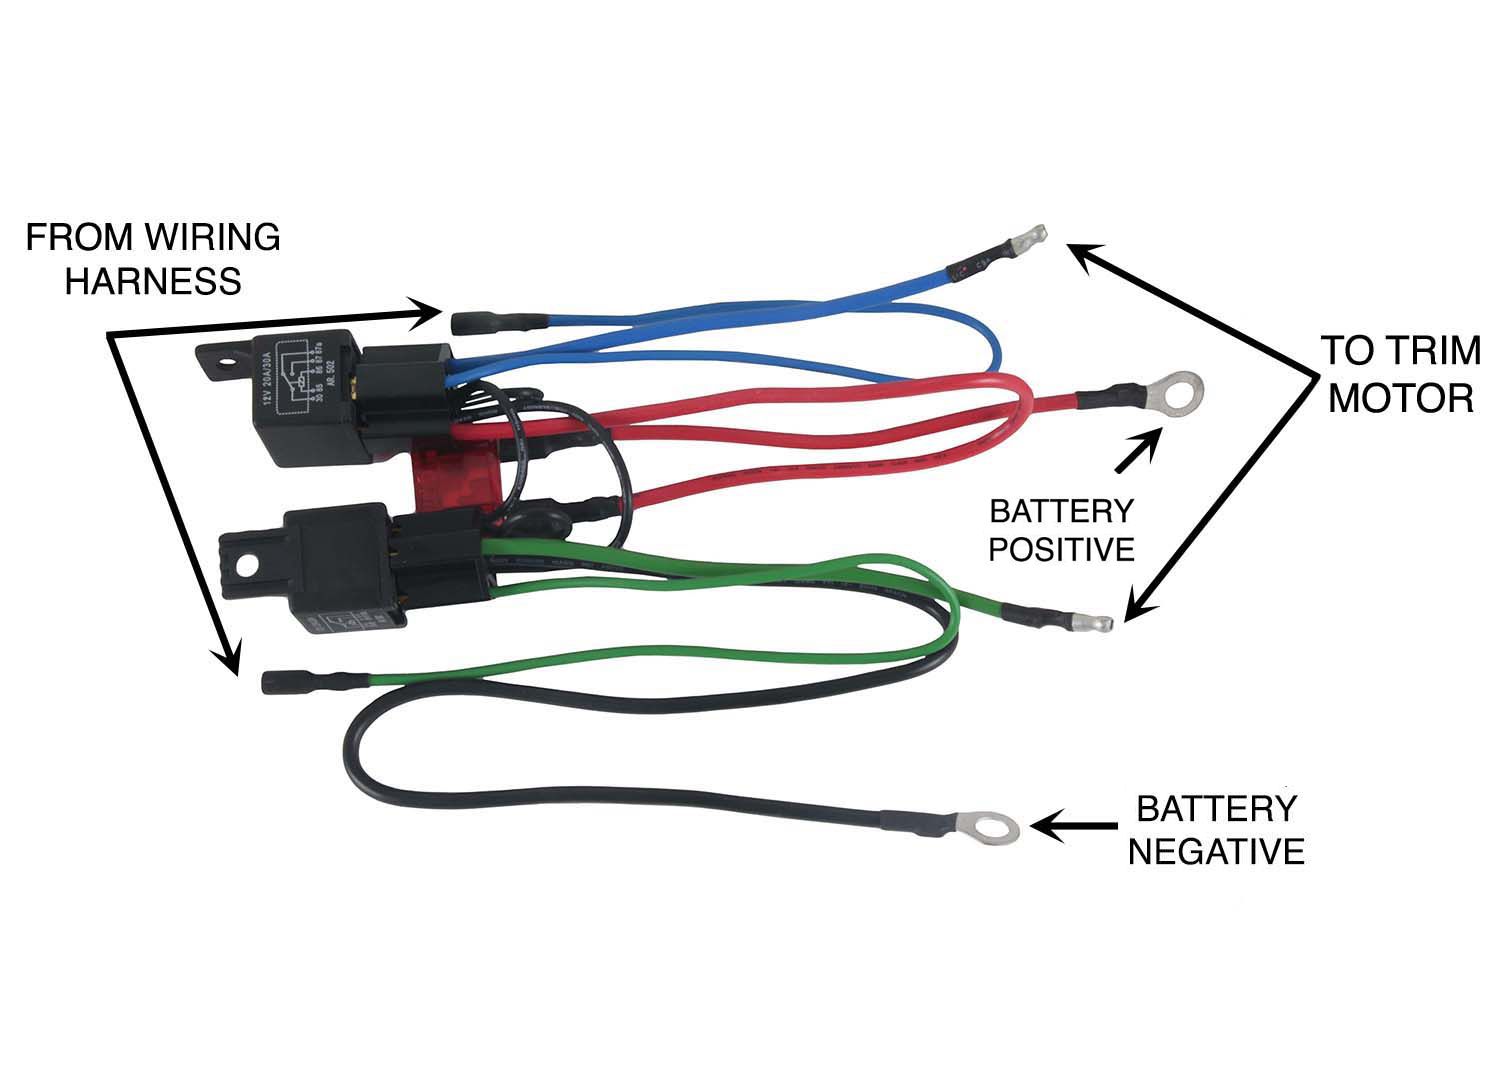 Outboard Trim Motor Wiring Diagram Schematic Diagrams Alpha One 2 Wire Power Database Johnson Ignition Switch